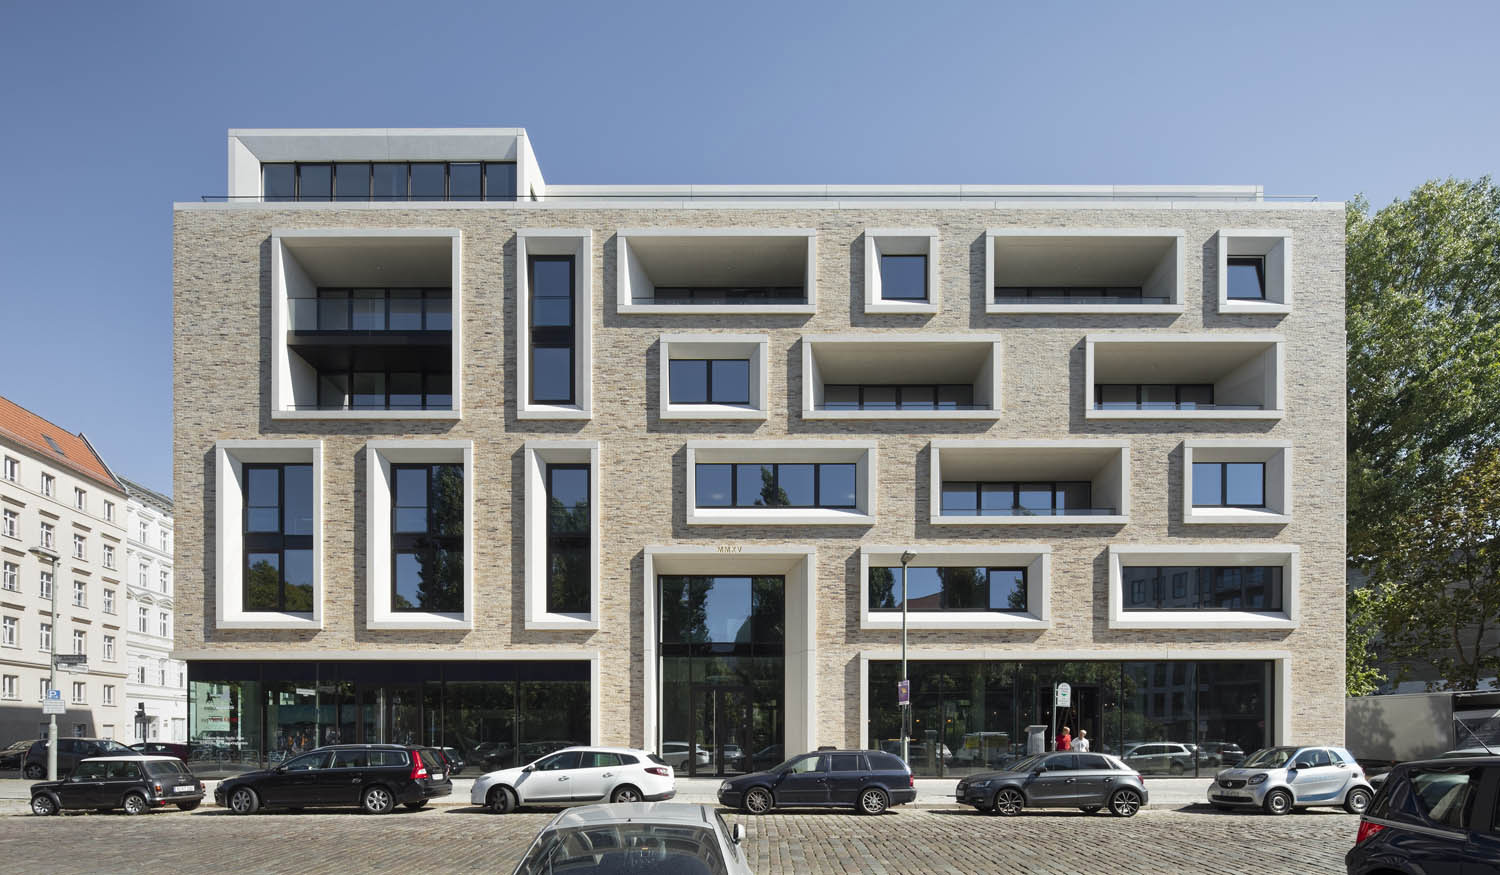 The residential building on Ackerstraße 29 with retail spaces in the ground floor Werner Huthmacher